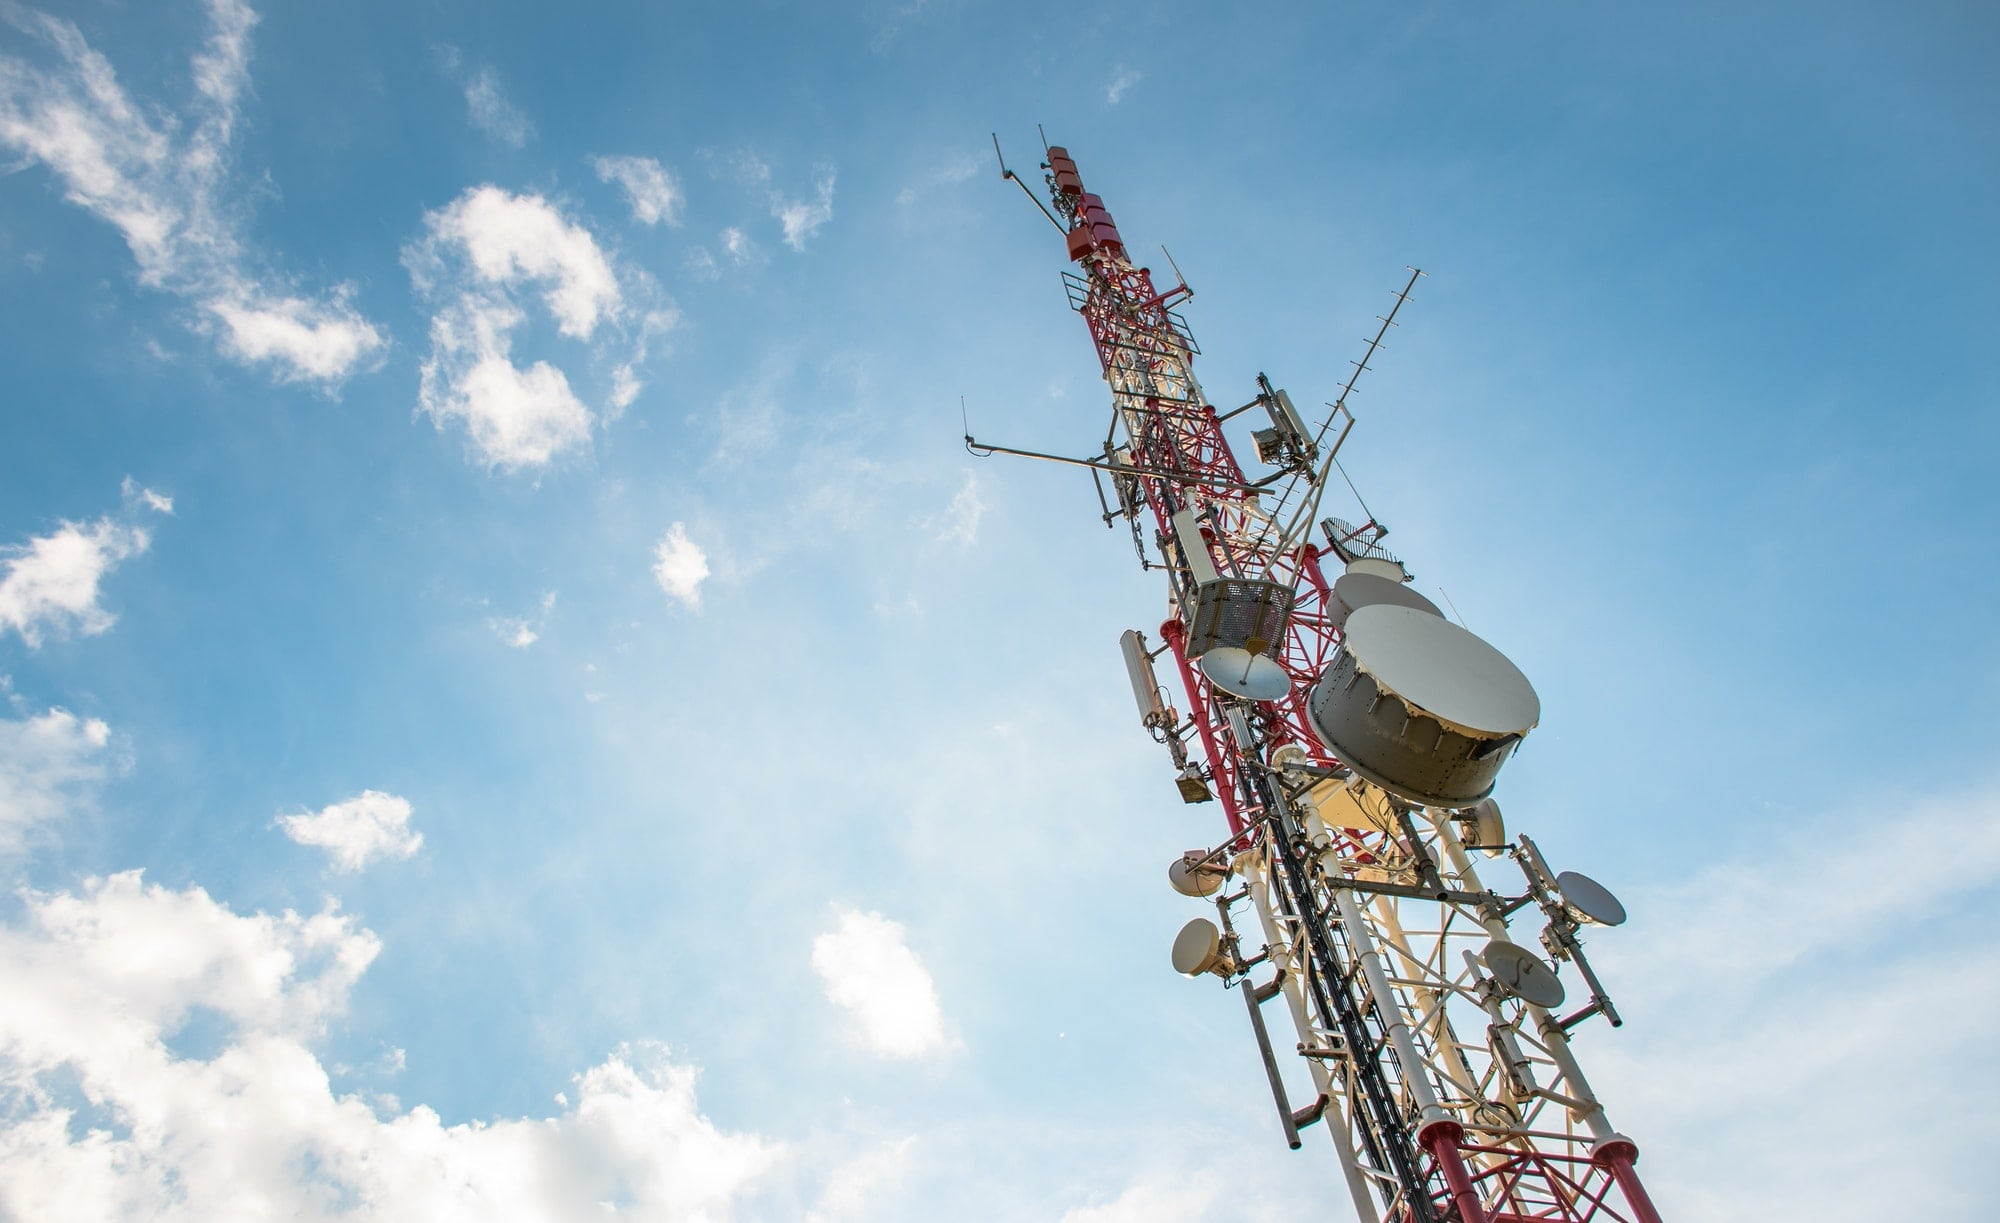 Antenna tower against a blue sky, 5g, broadcasting, wireless, radiowave, network.